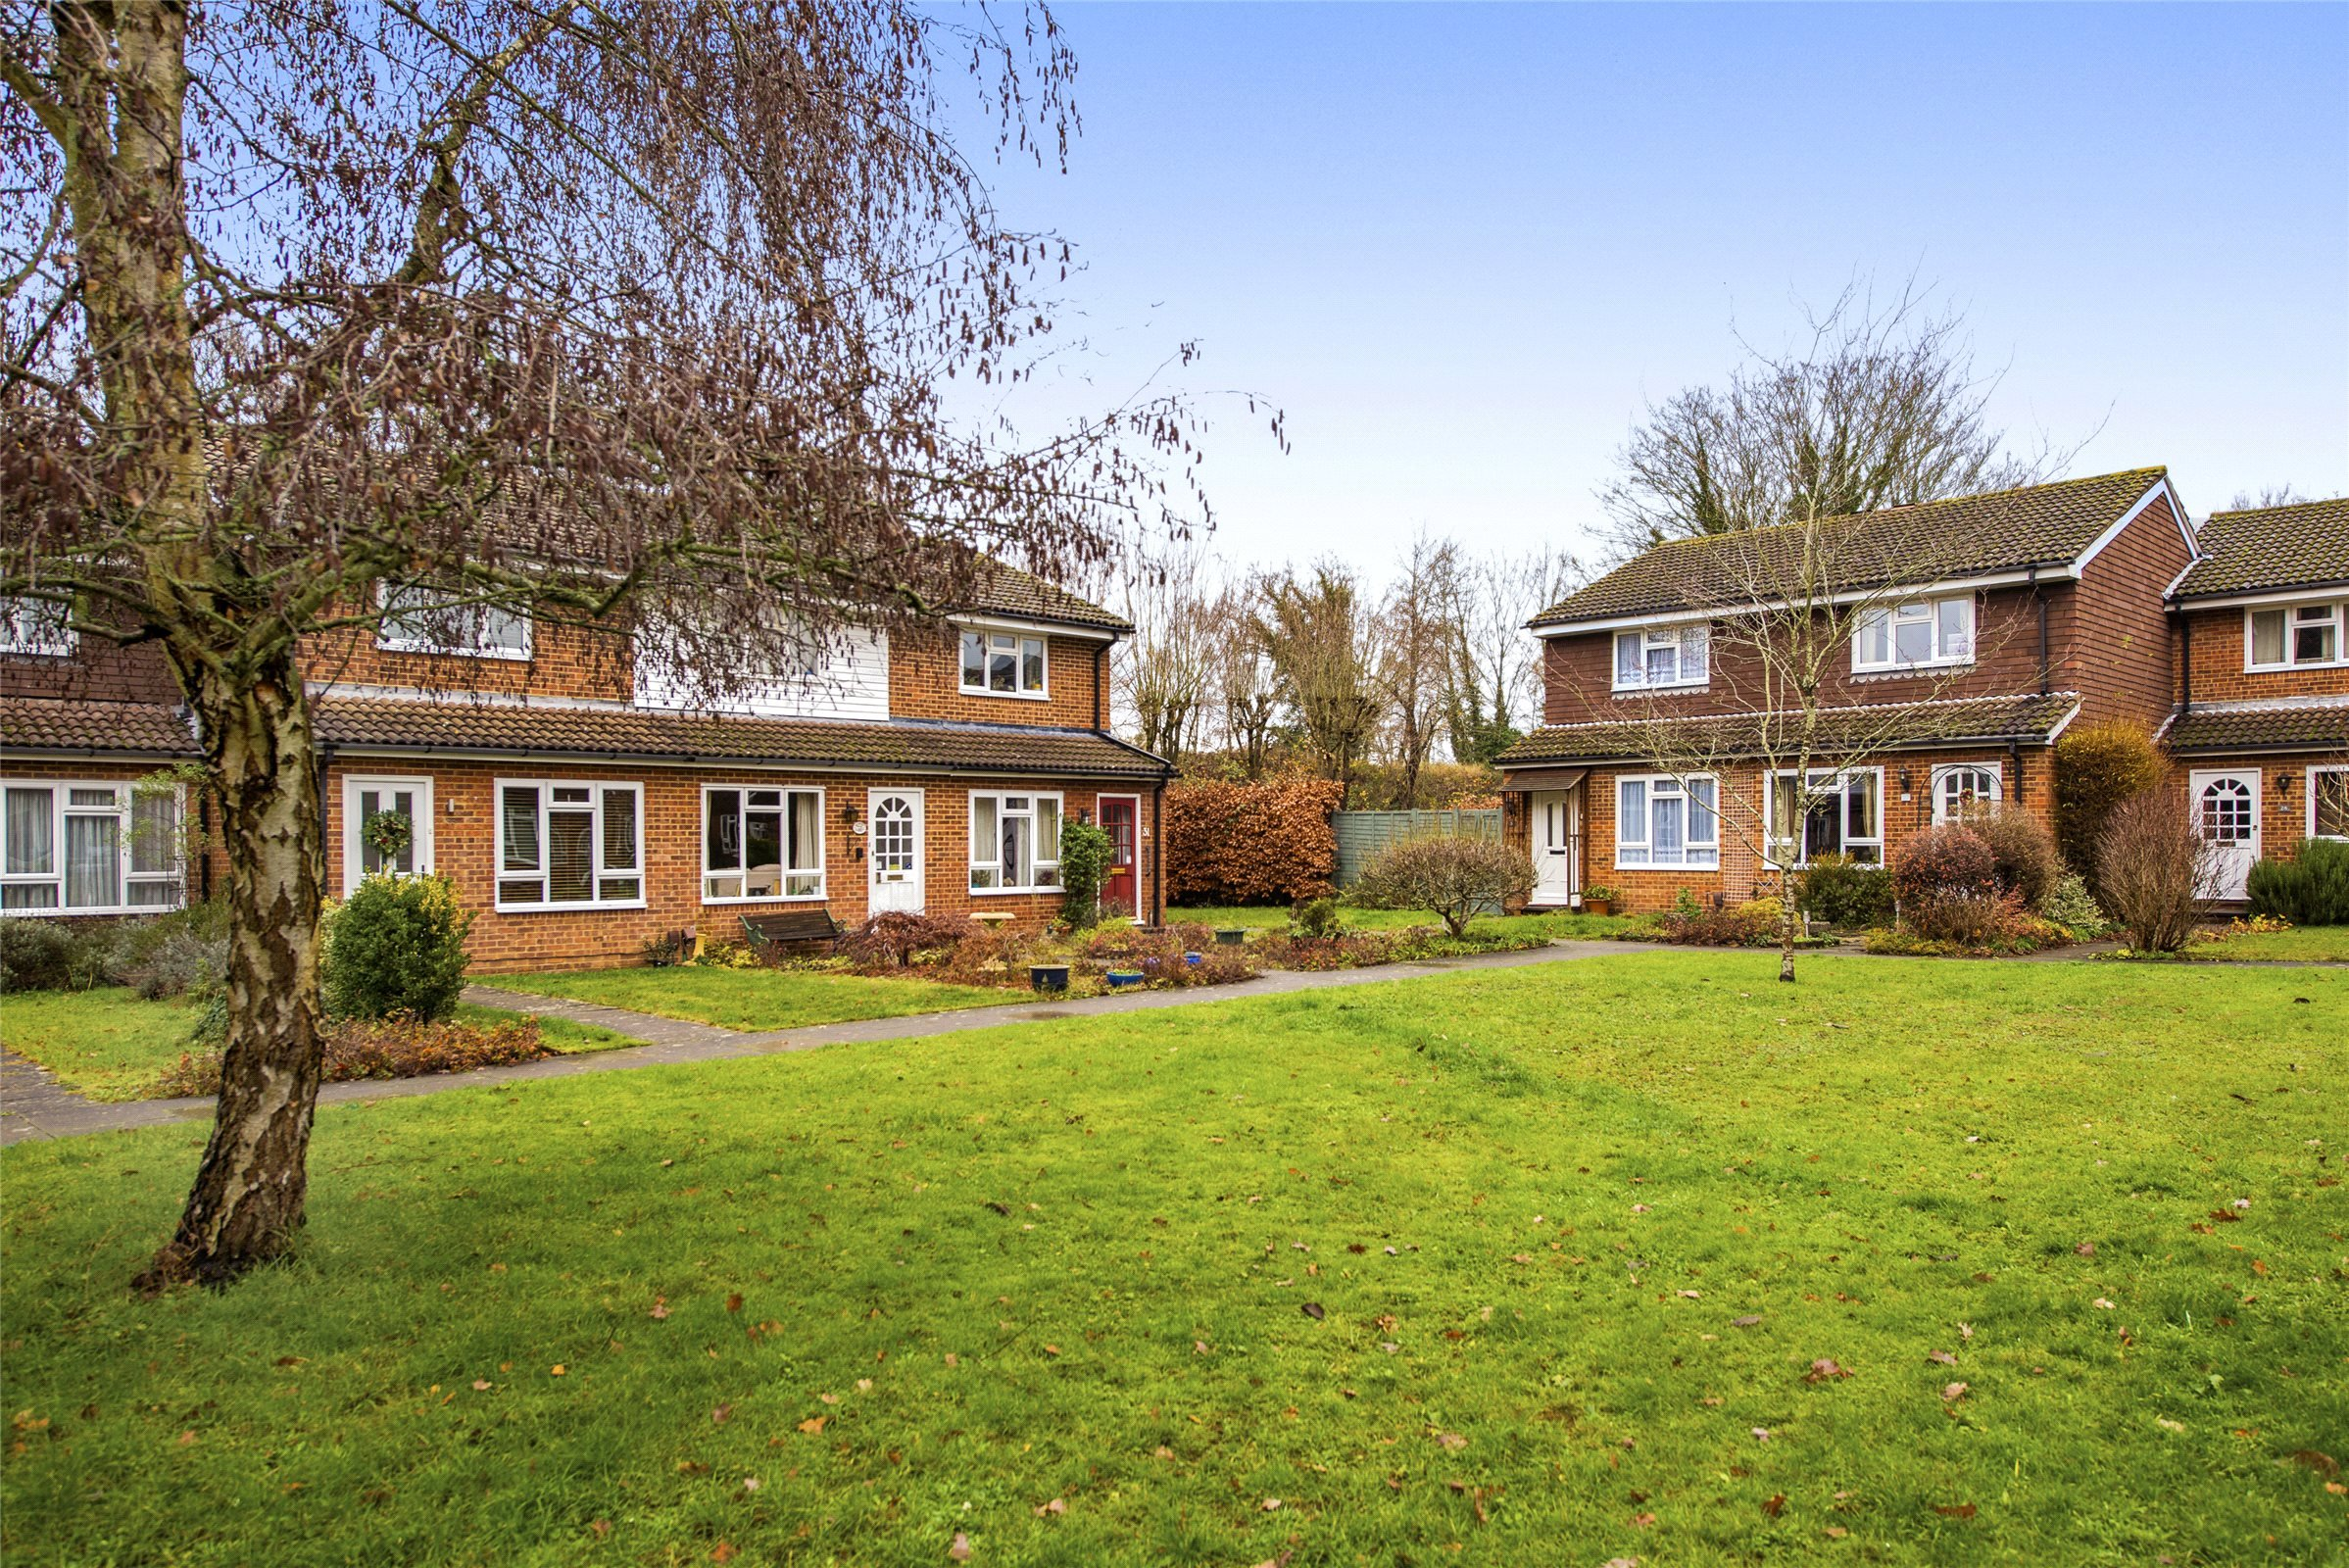 2 Bedroom Property For Sale In Chester Close Dorking Surrey Rh4 365000